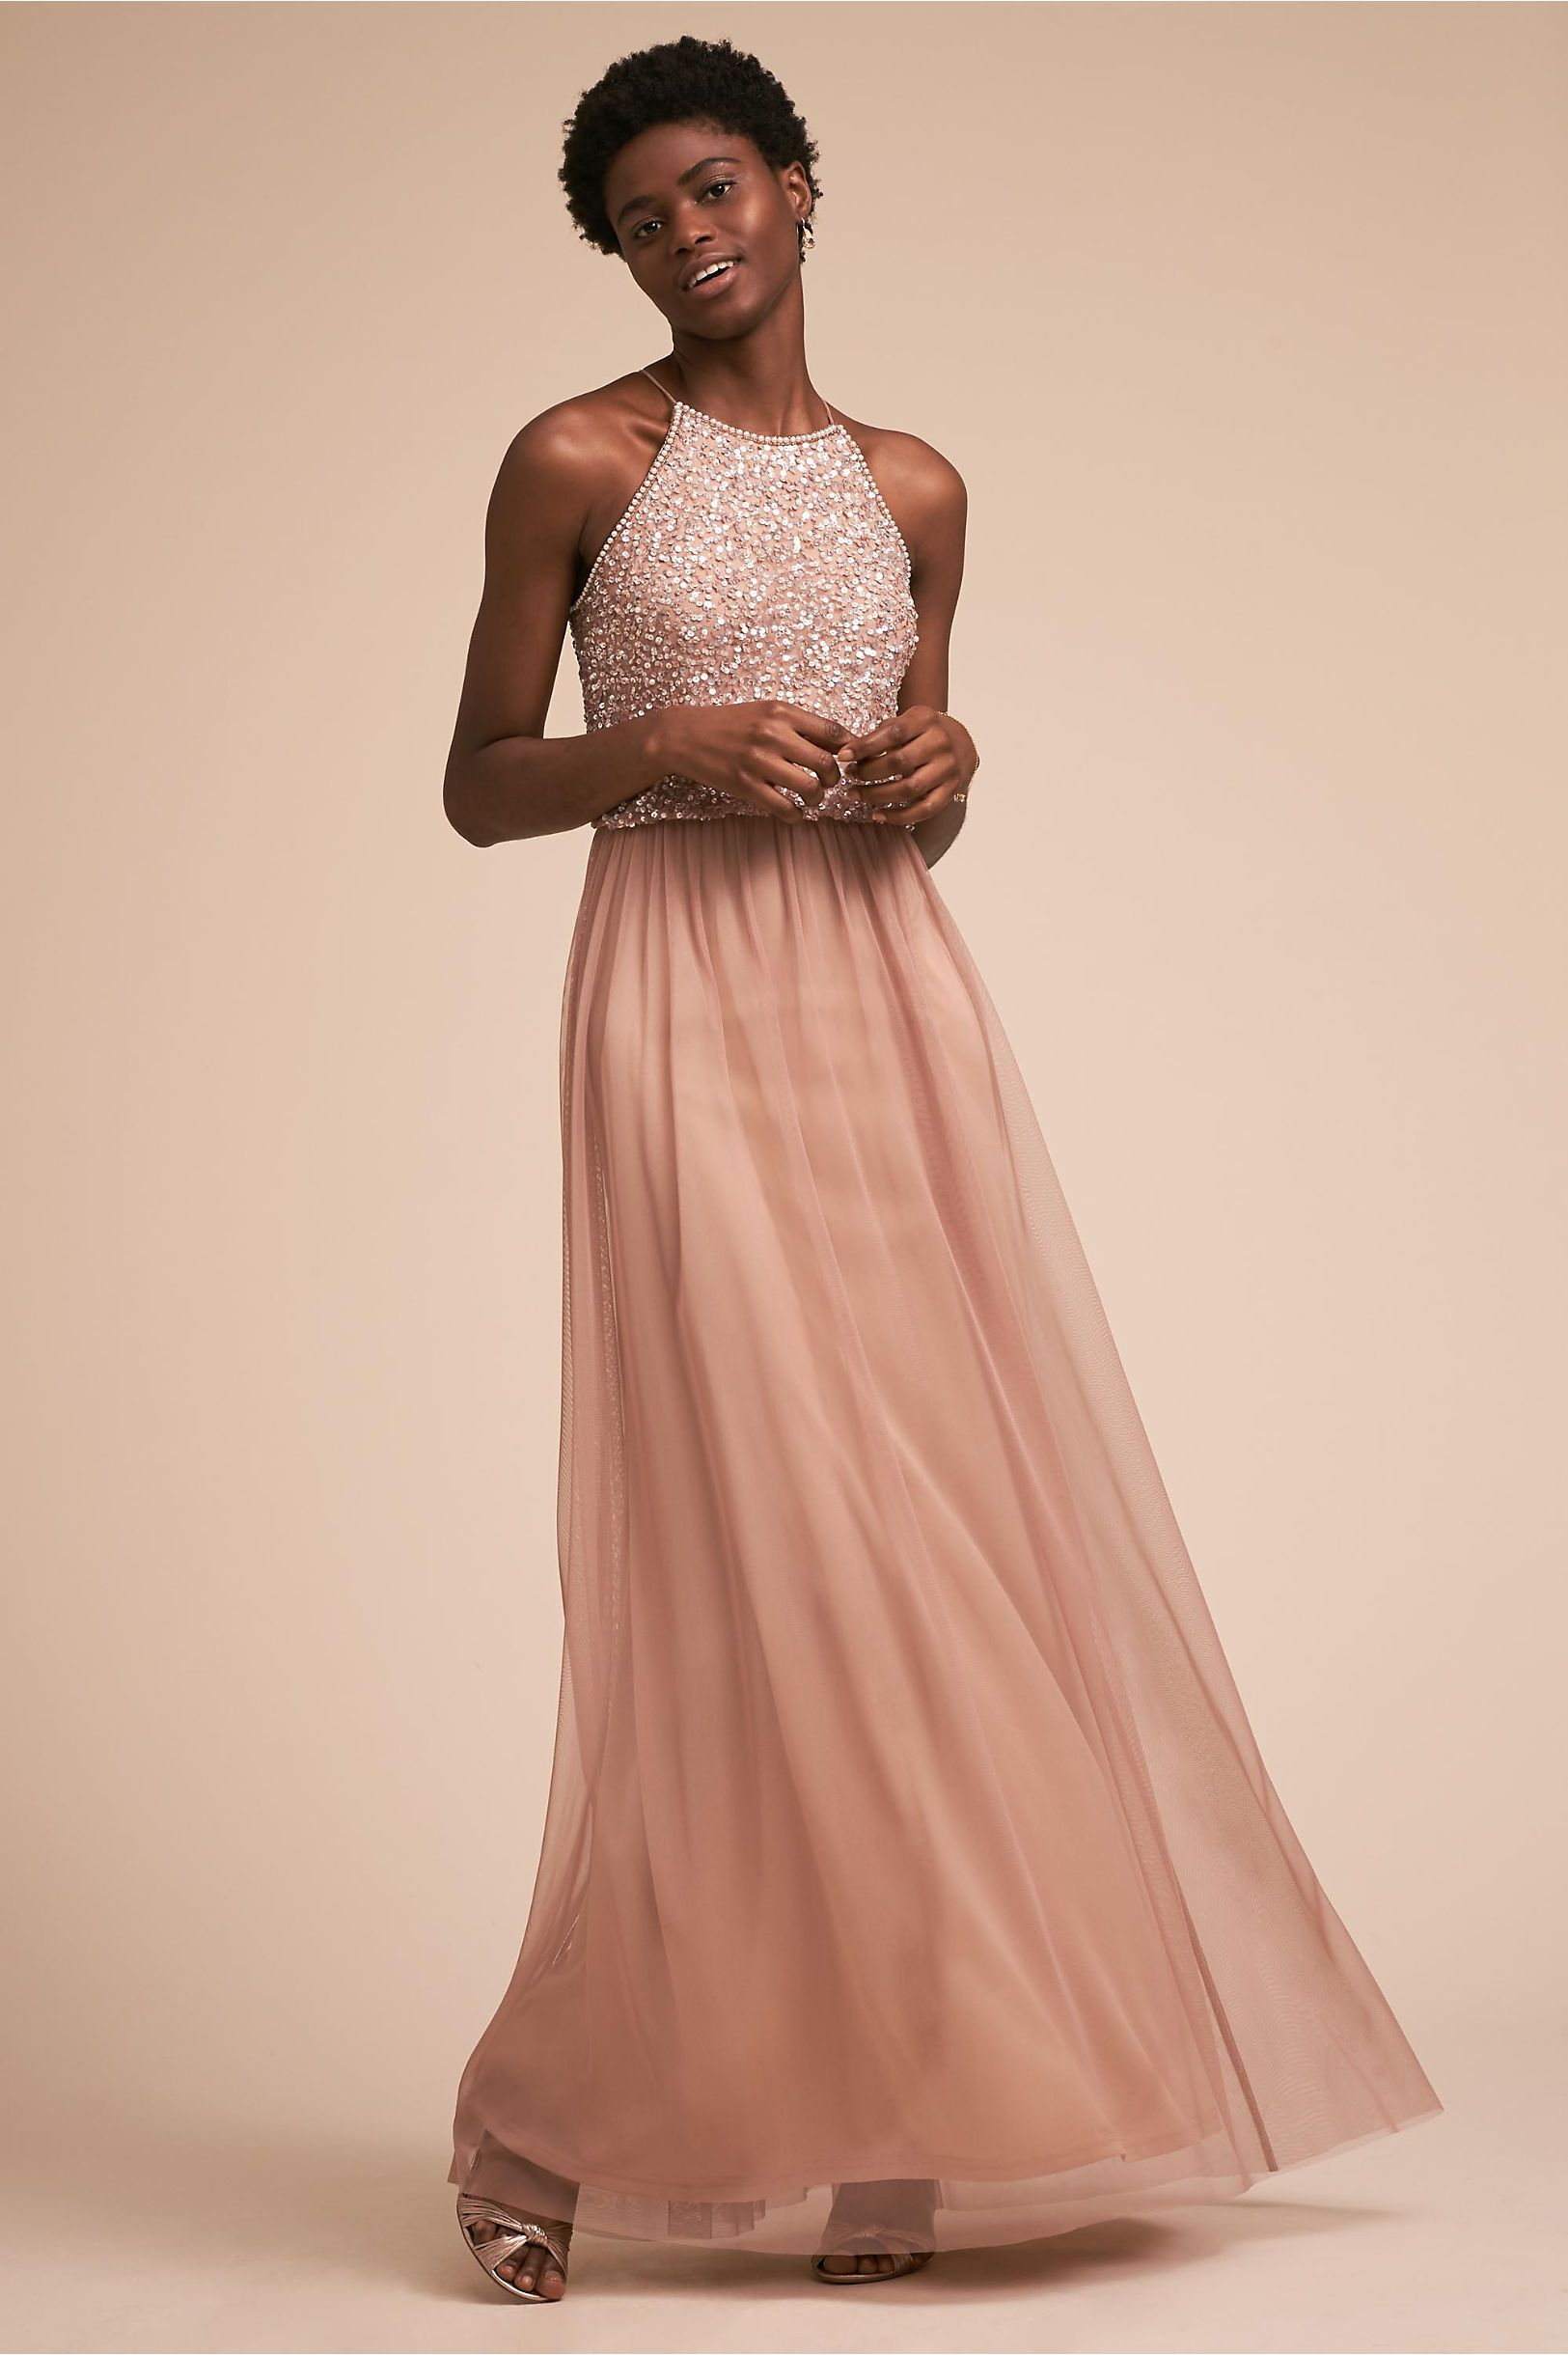 968833a9d985 BHLDN s Adrianna Papell Scarlett Dress in Rose Gold